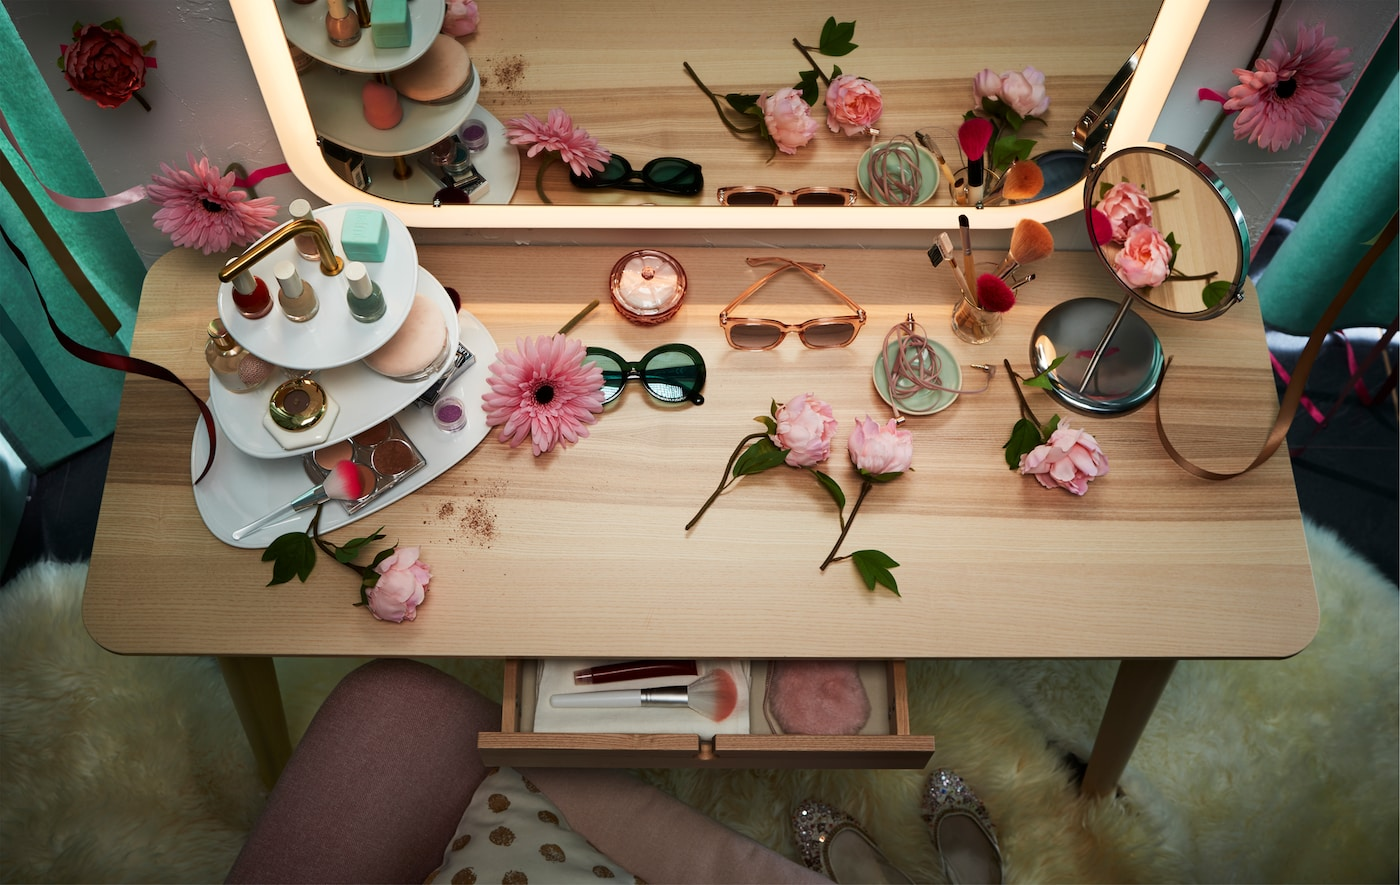 A LISABO desk being used as a makeup table together with a STORJORM mirror with integrated lighting.